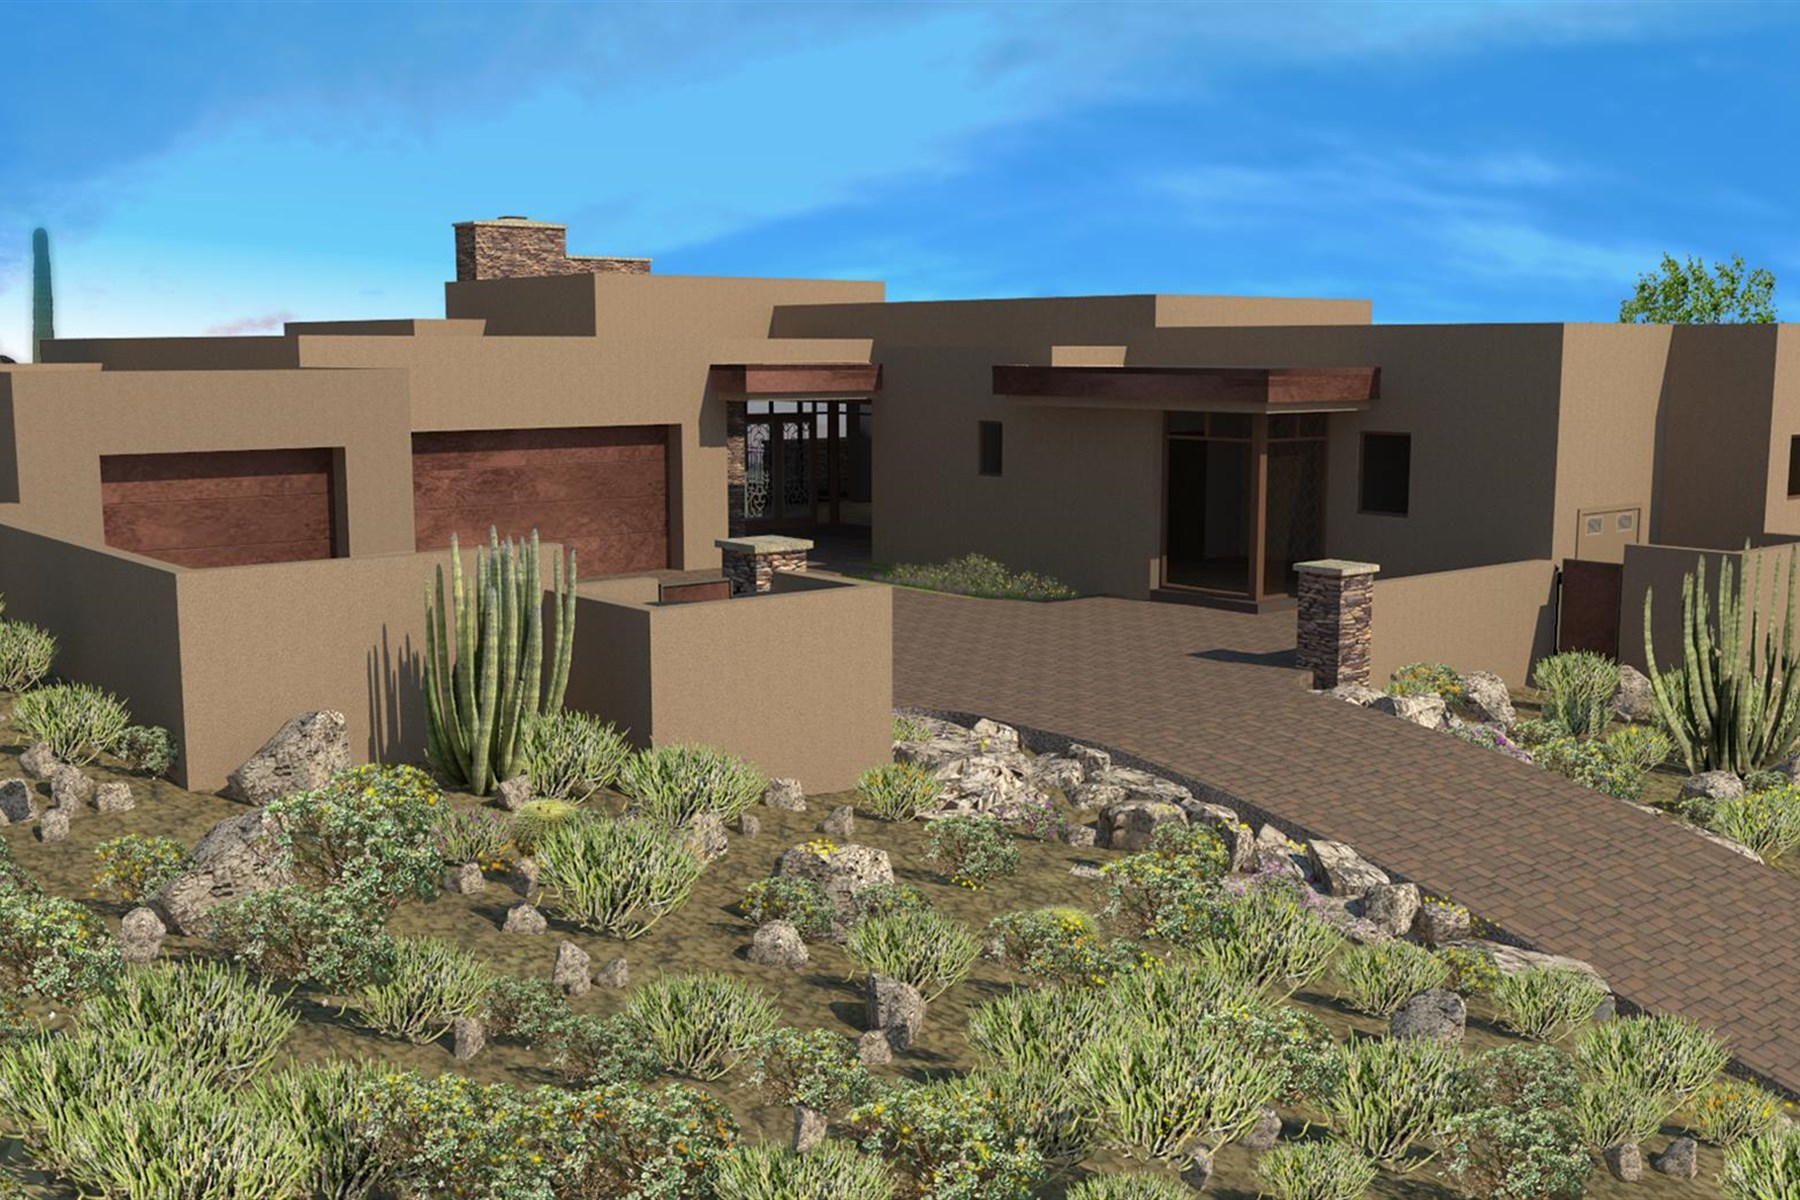 Casa para uma família para Venda às Contemporary new build by Red Moon Homes 39593 N 104TH ST Scottsdale, Arizona, 85262 Estados Unidos